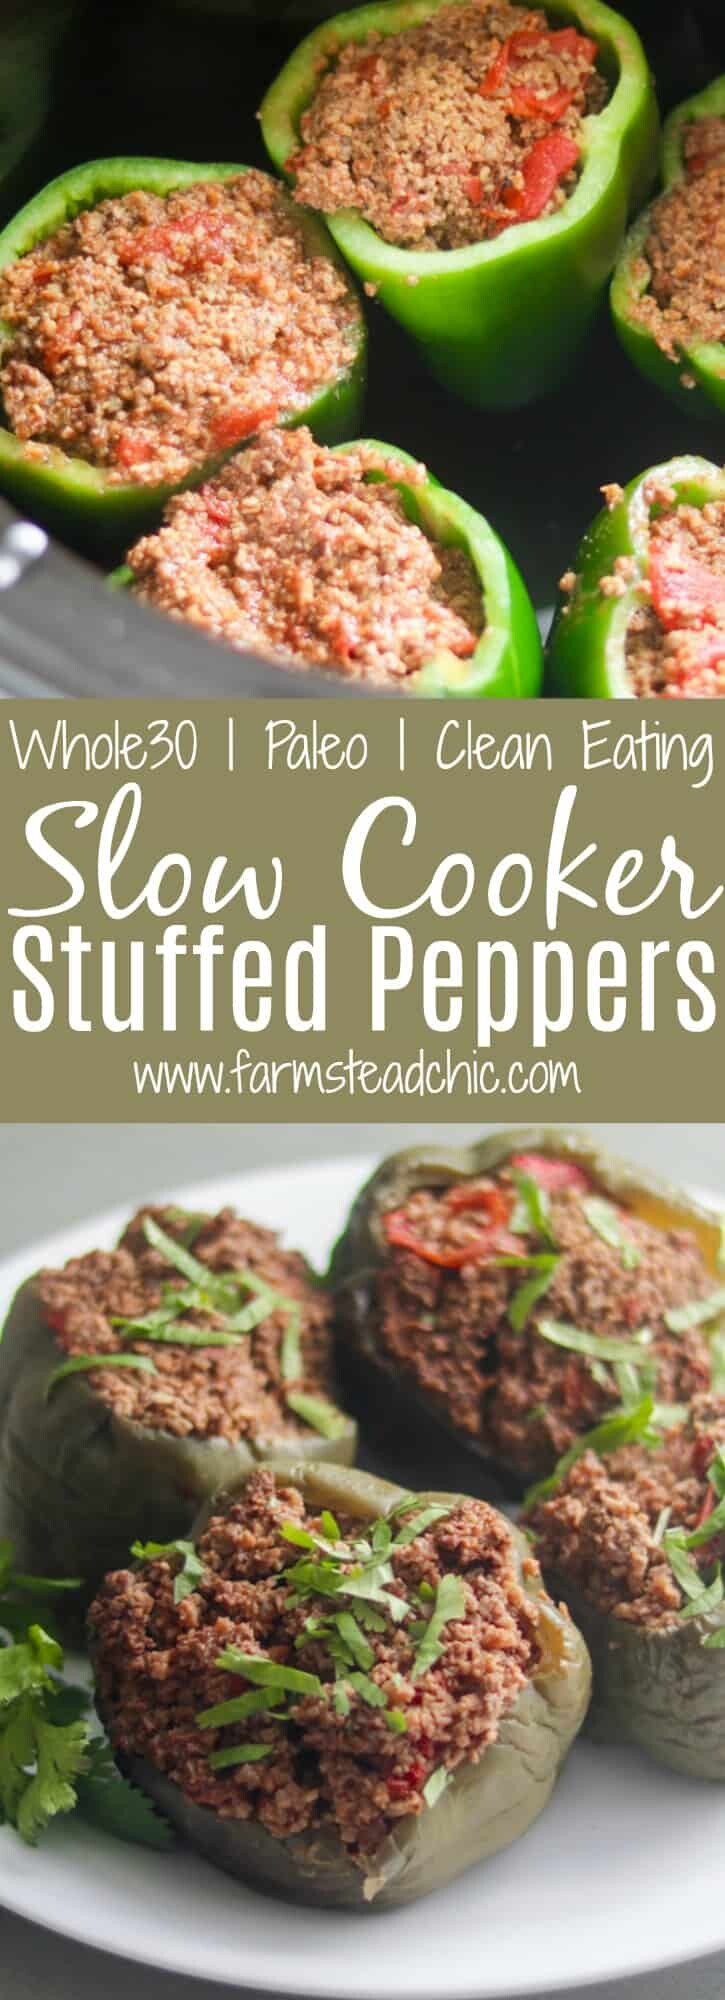 These Paleo and Whole30 Slow Cooker Stuffed Peppers are juicy + full of flavor. So easy and healthy - the perfect weeknight dinner. Low Carb, Primal, Keto, grain-free, gluten-free and dairy-free!